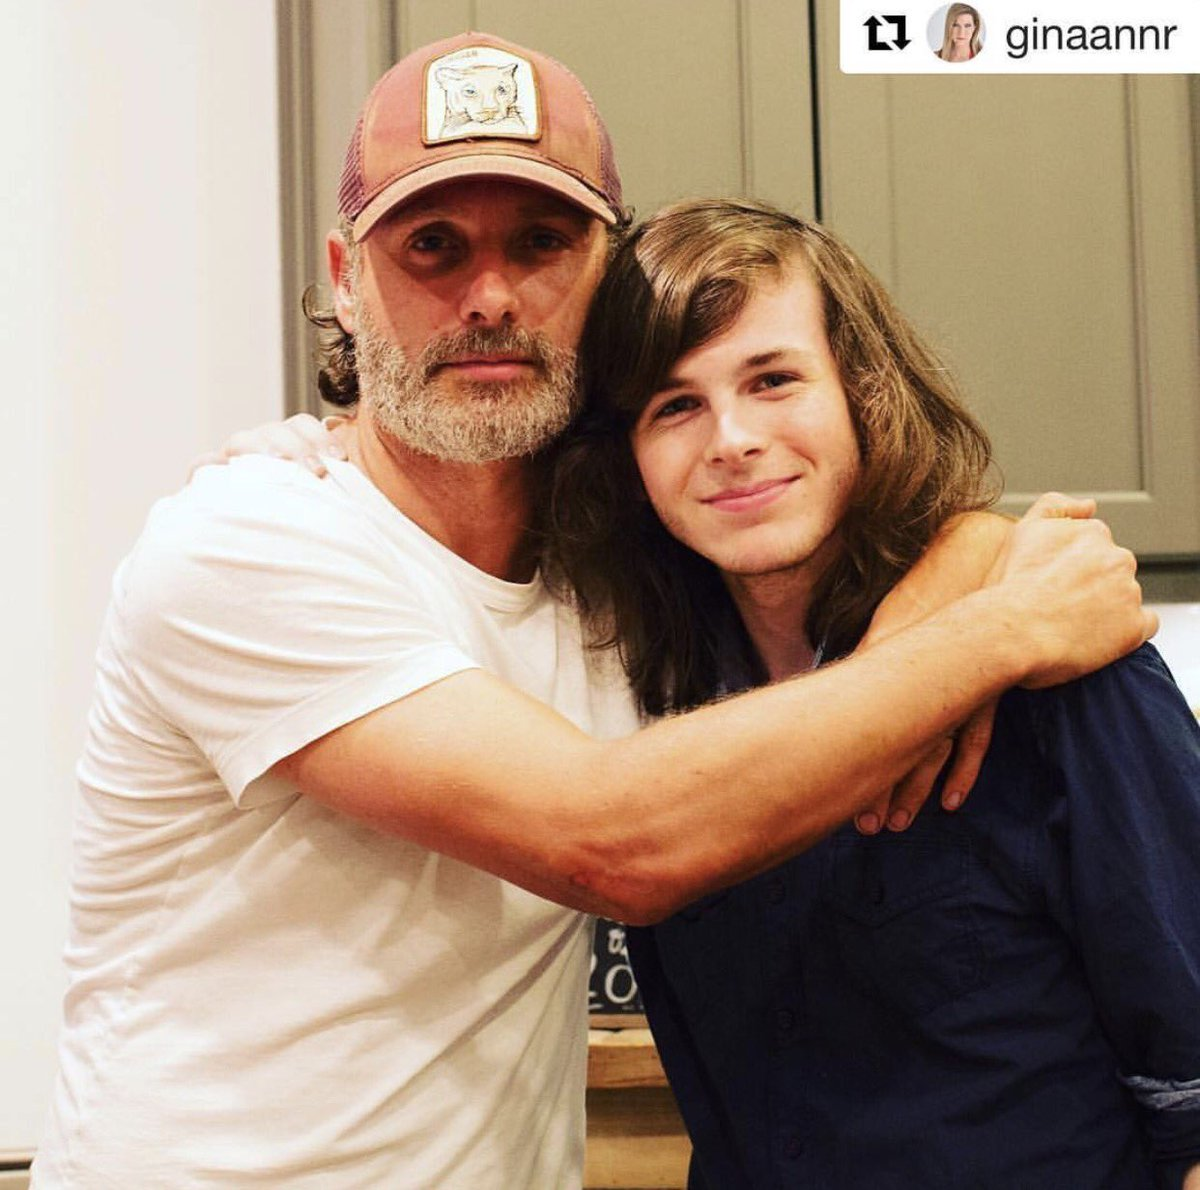 Night  Andy surprised Chandler at his graduation party #TWDfamily  ~ #AndrewLincoln #ChandlerRiggs  IG: ginaannr #TheWalkingDead #TWD<br>http://pic.twitter.com/RXQo8AiRrz